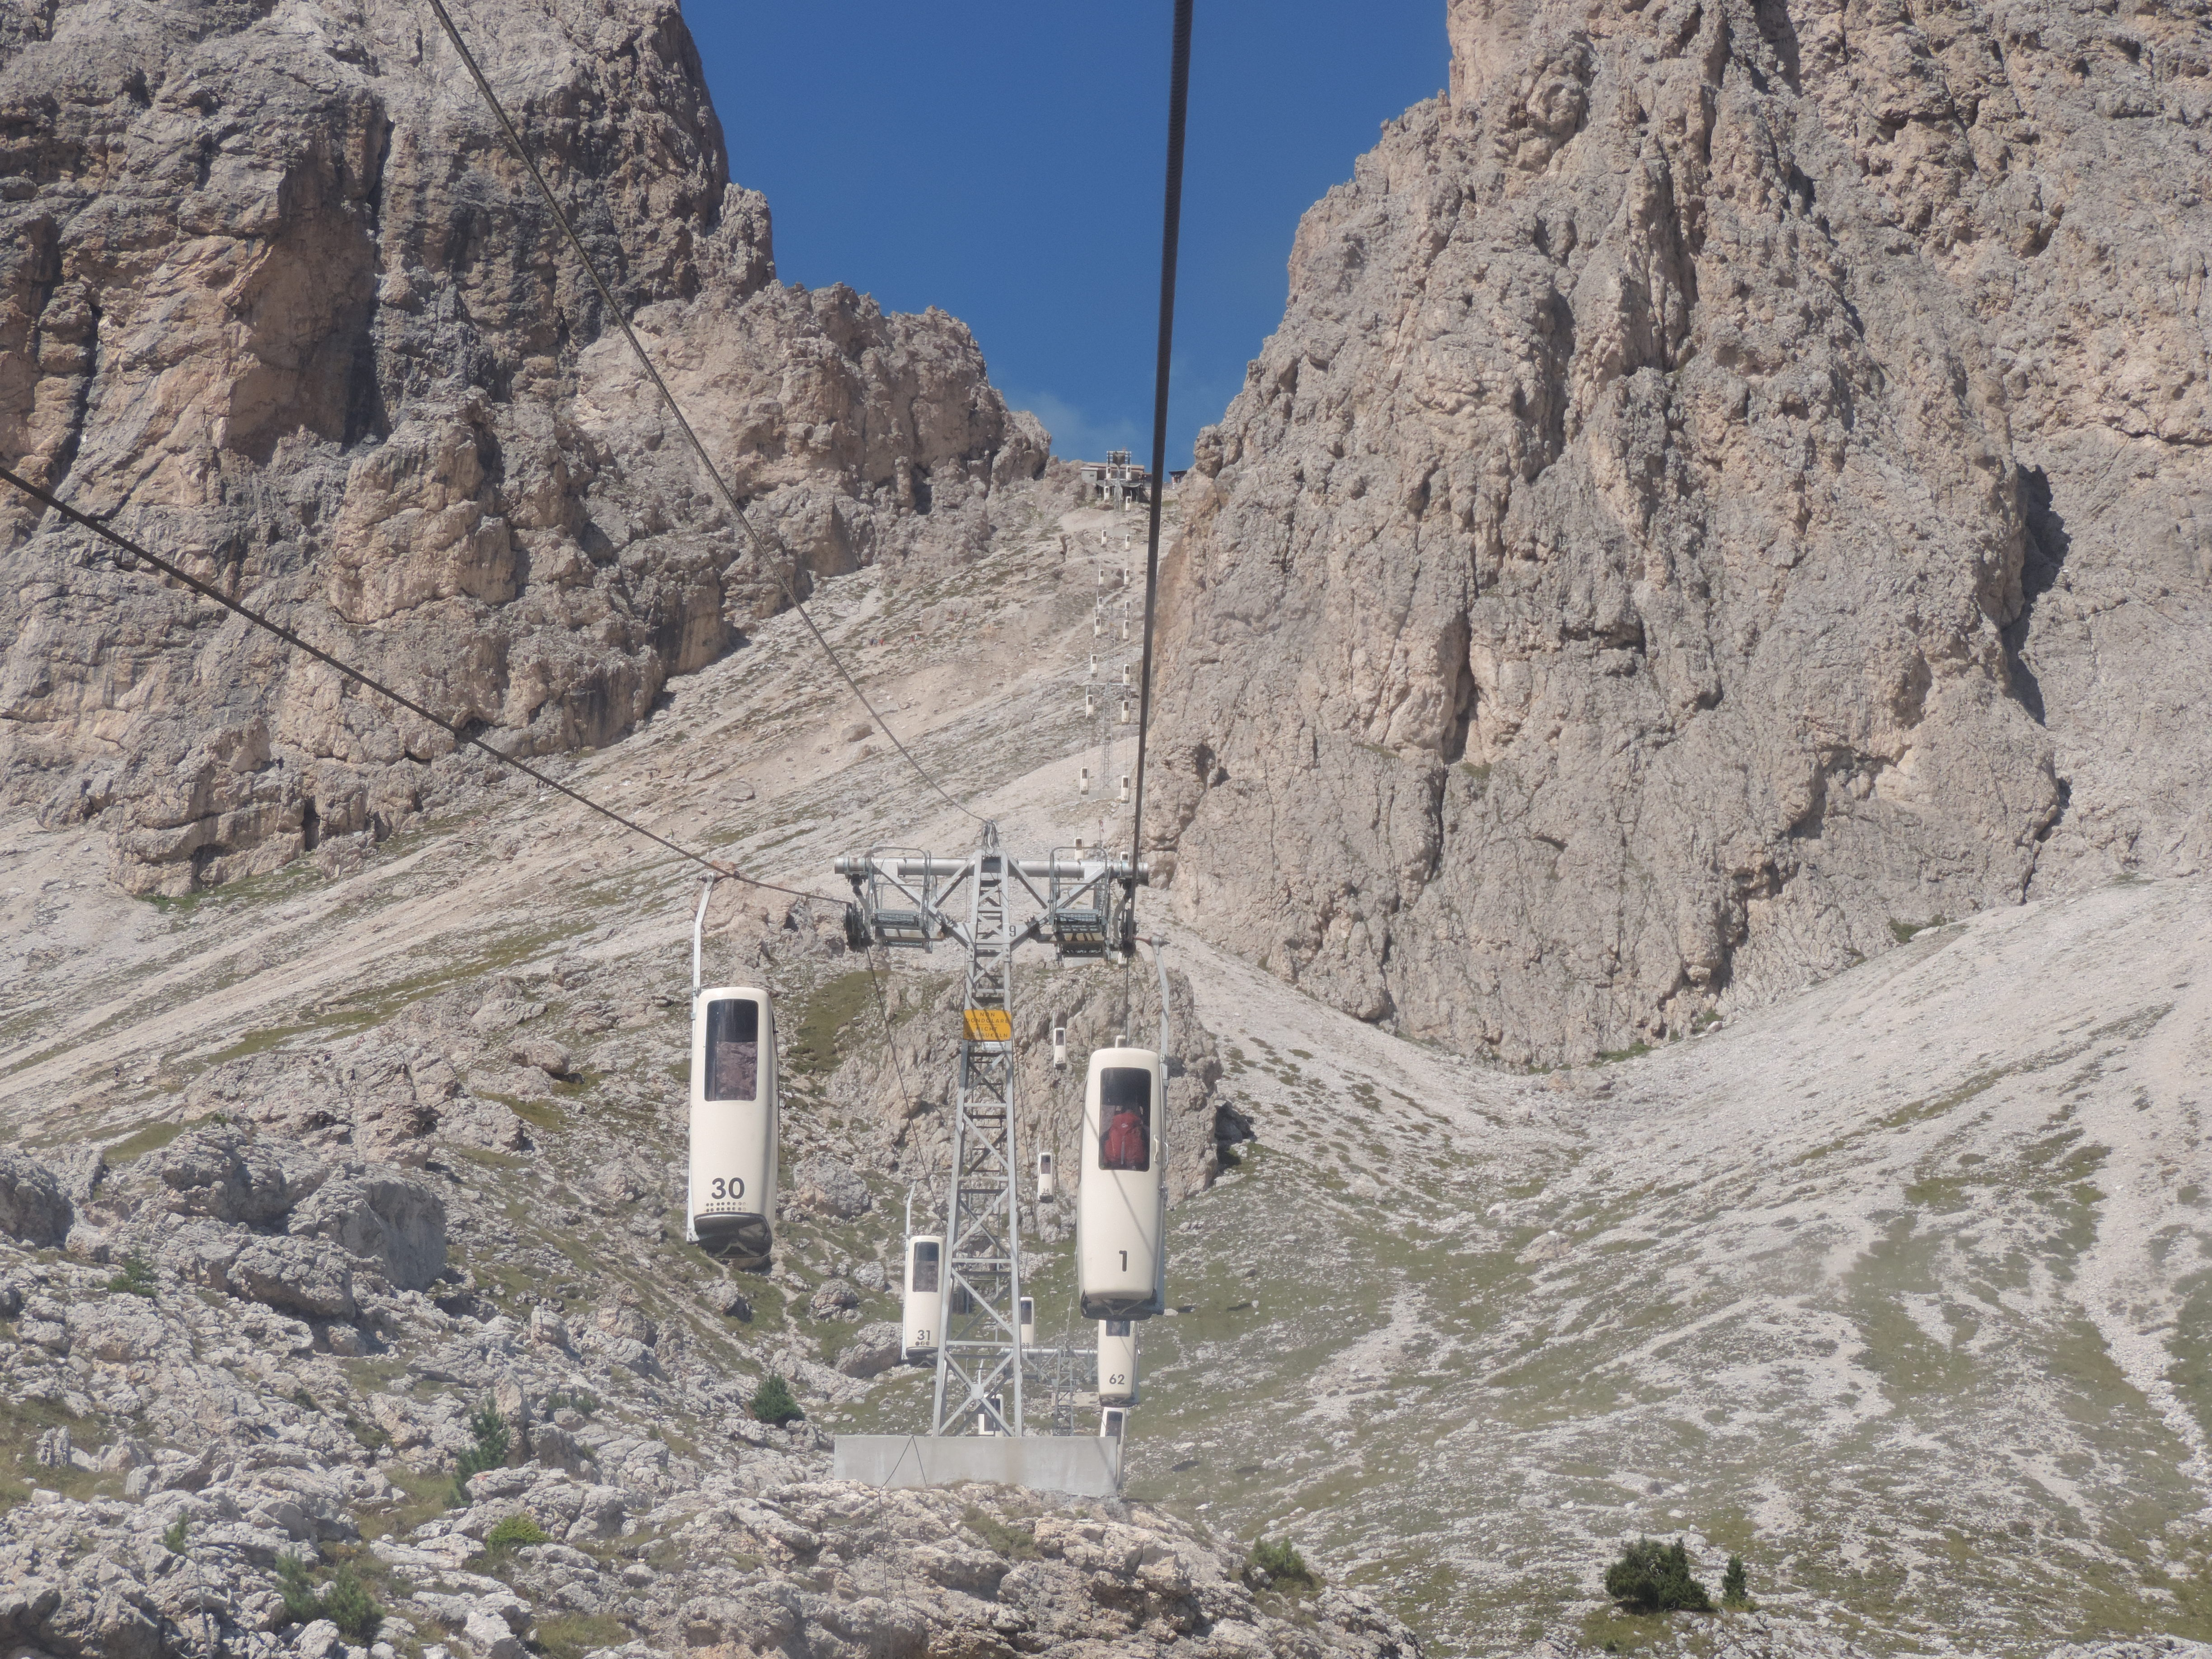 image: the coffin lifts taking you up to the toni demetz hut